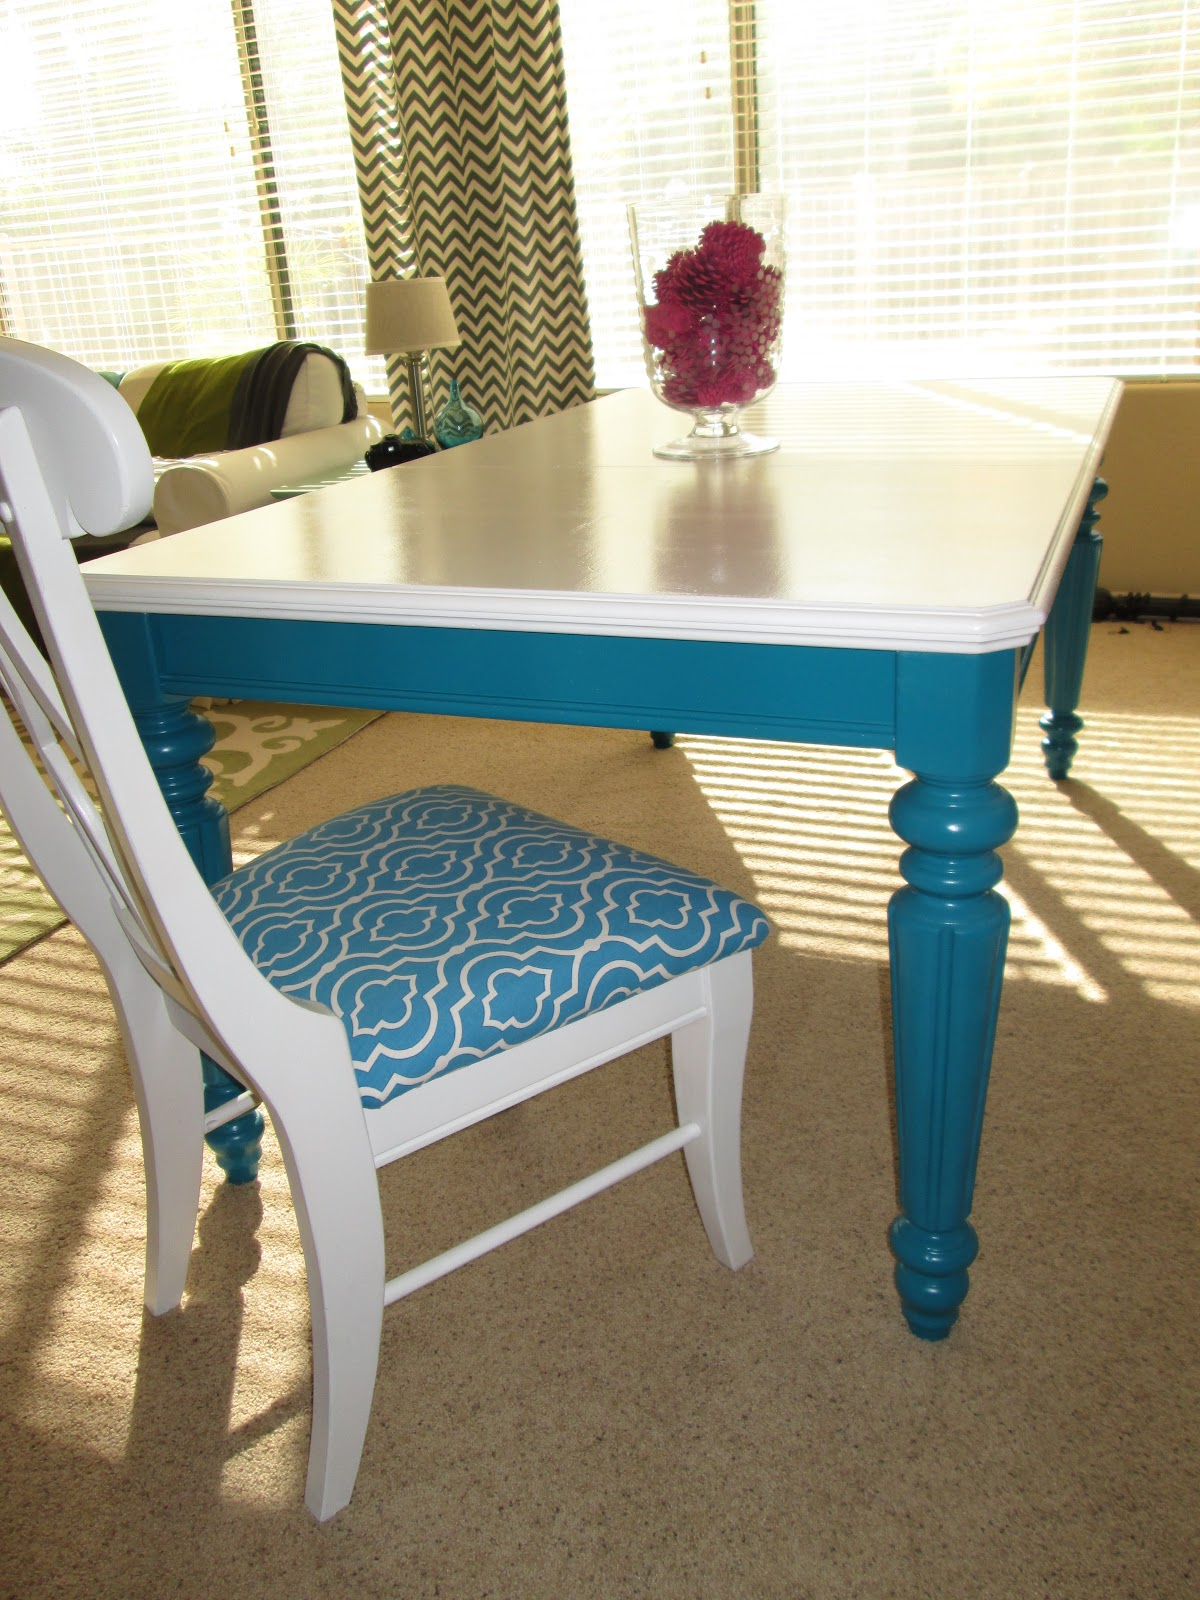 Perfectly Fixable: Dining Table Transformation